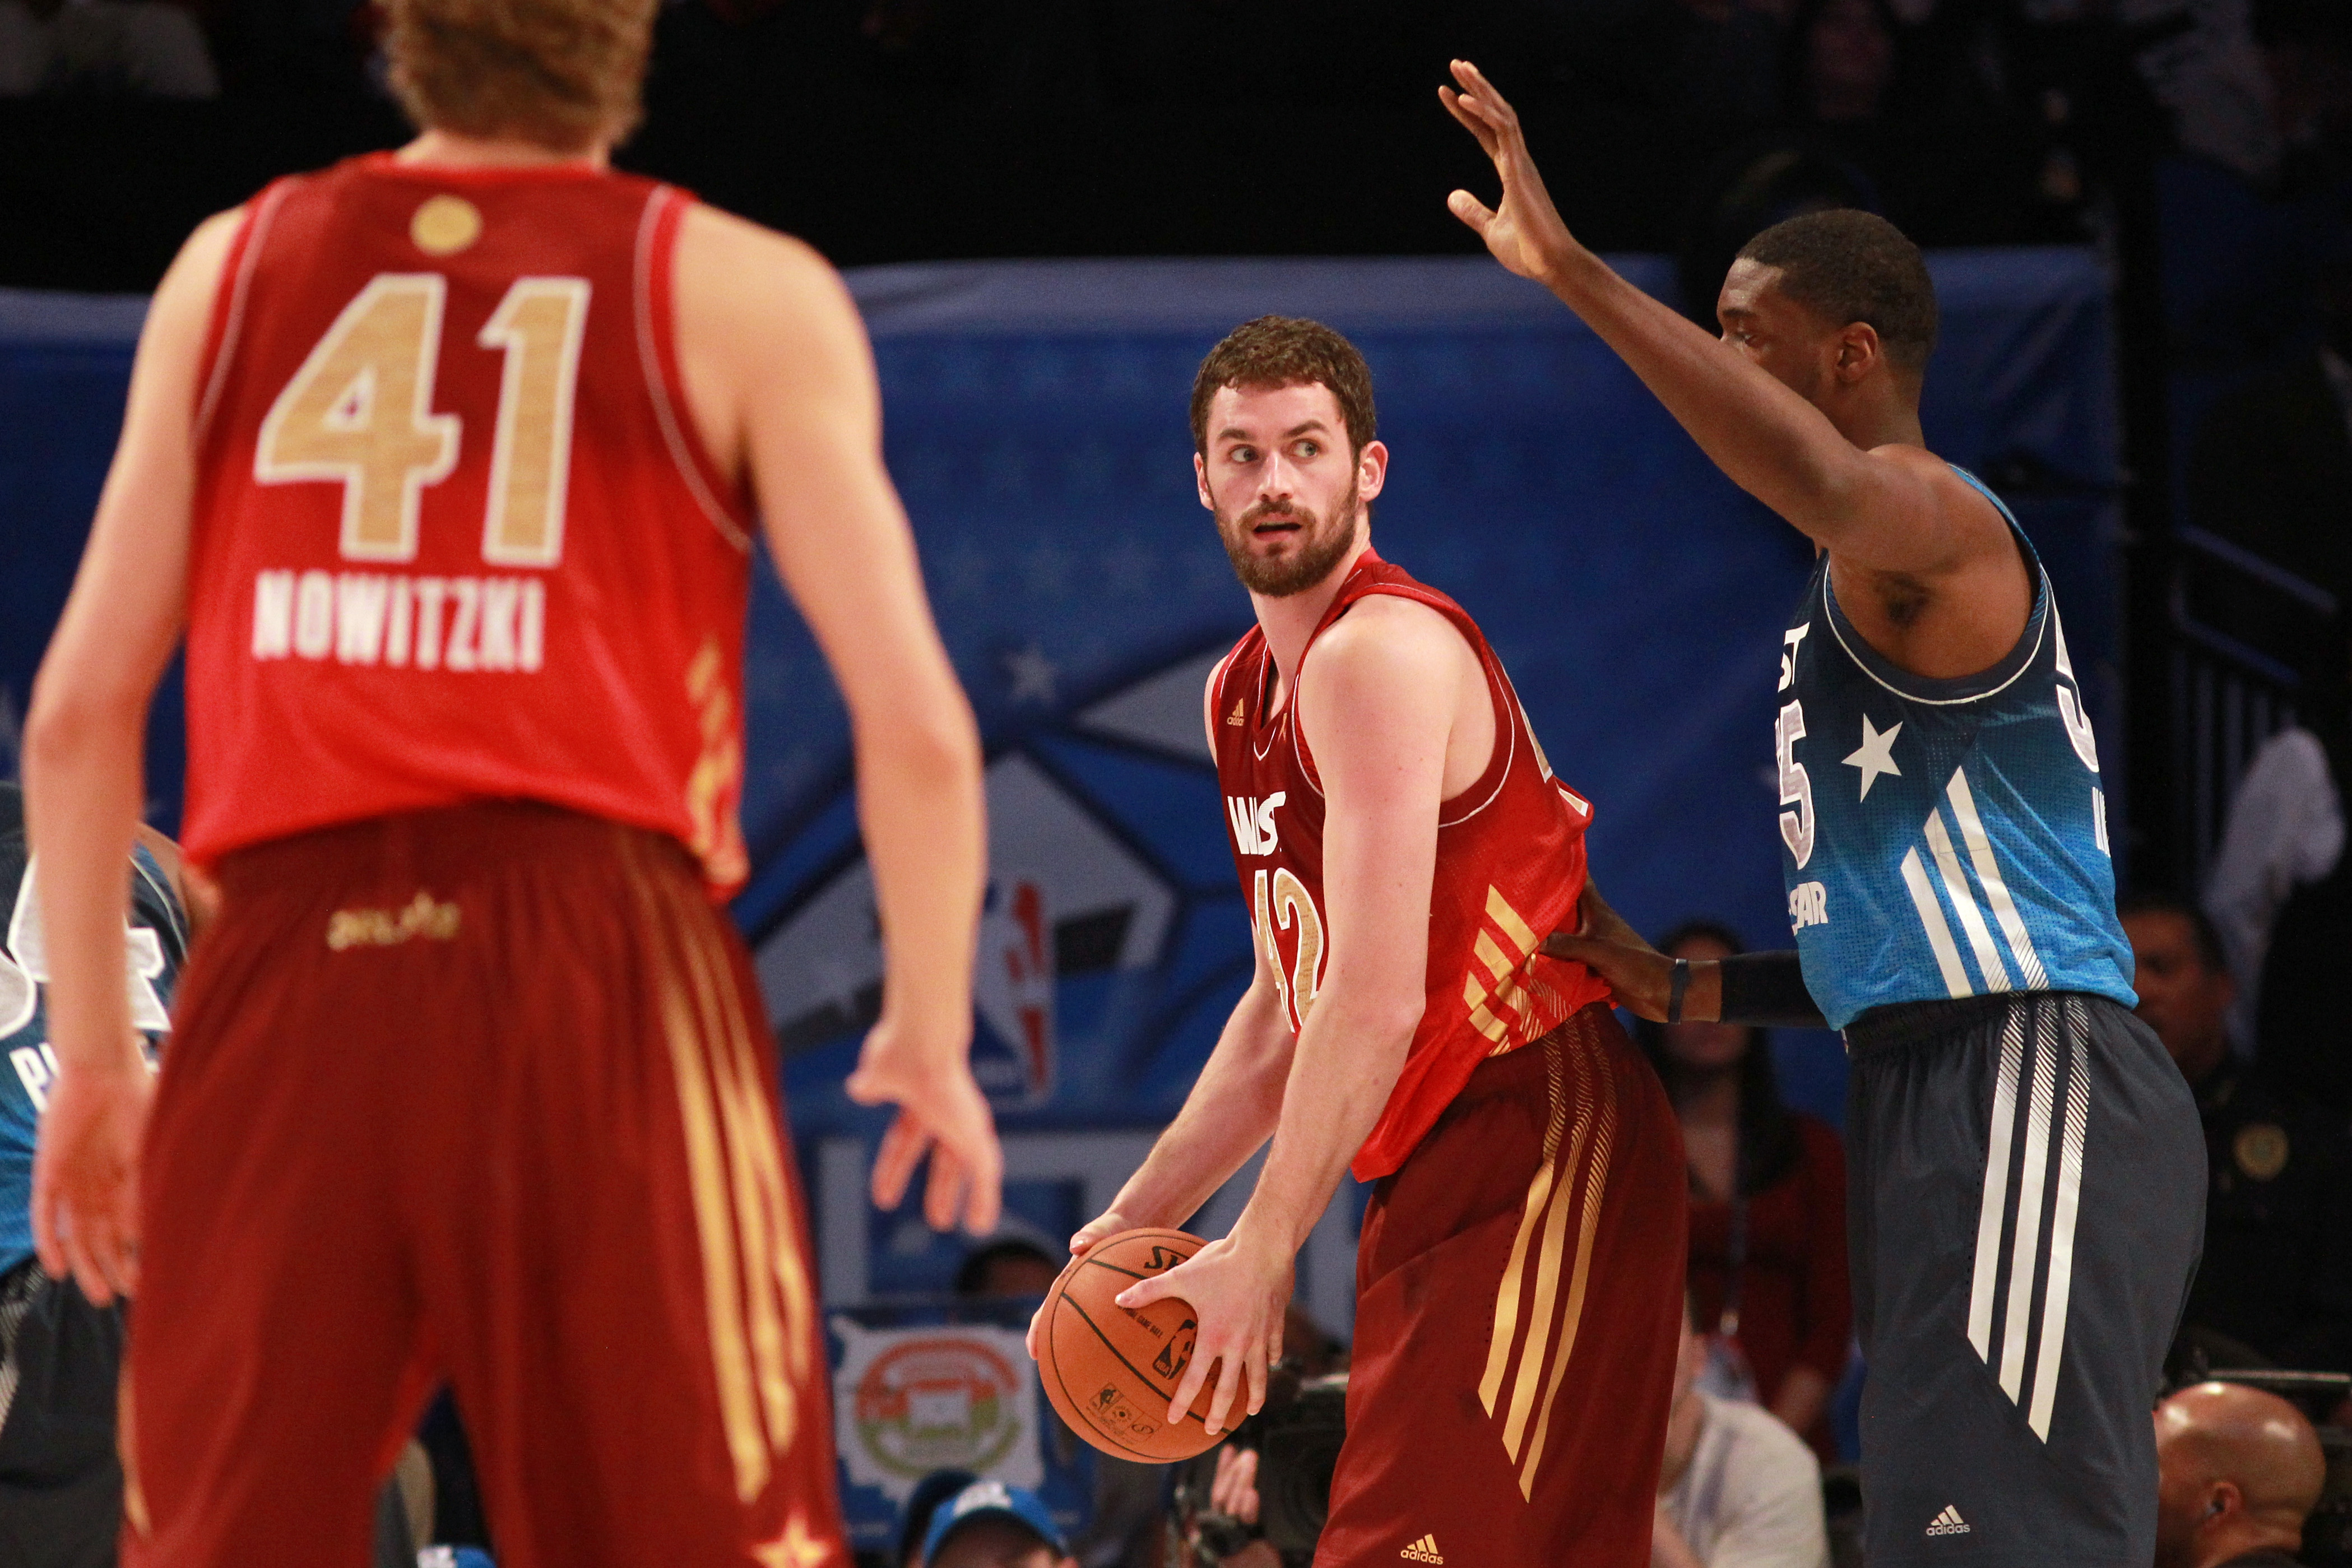 Kevin Love in 2012 at the NBA All-Star Game